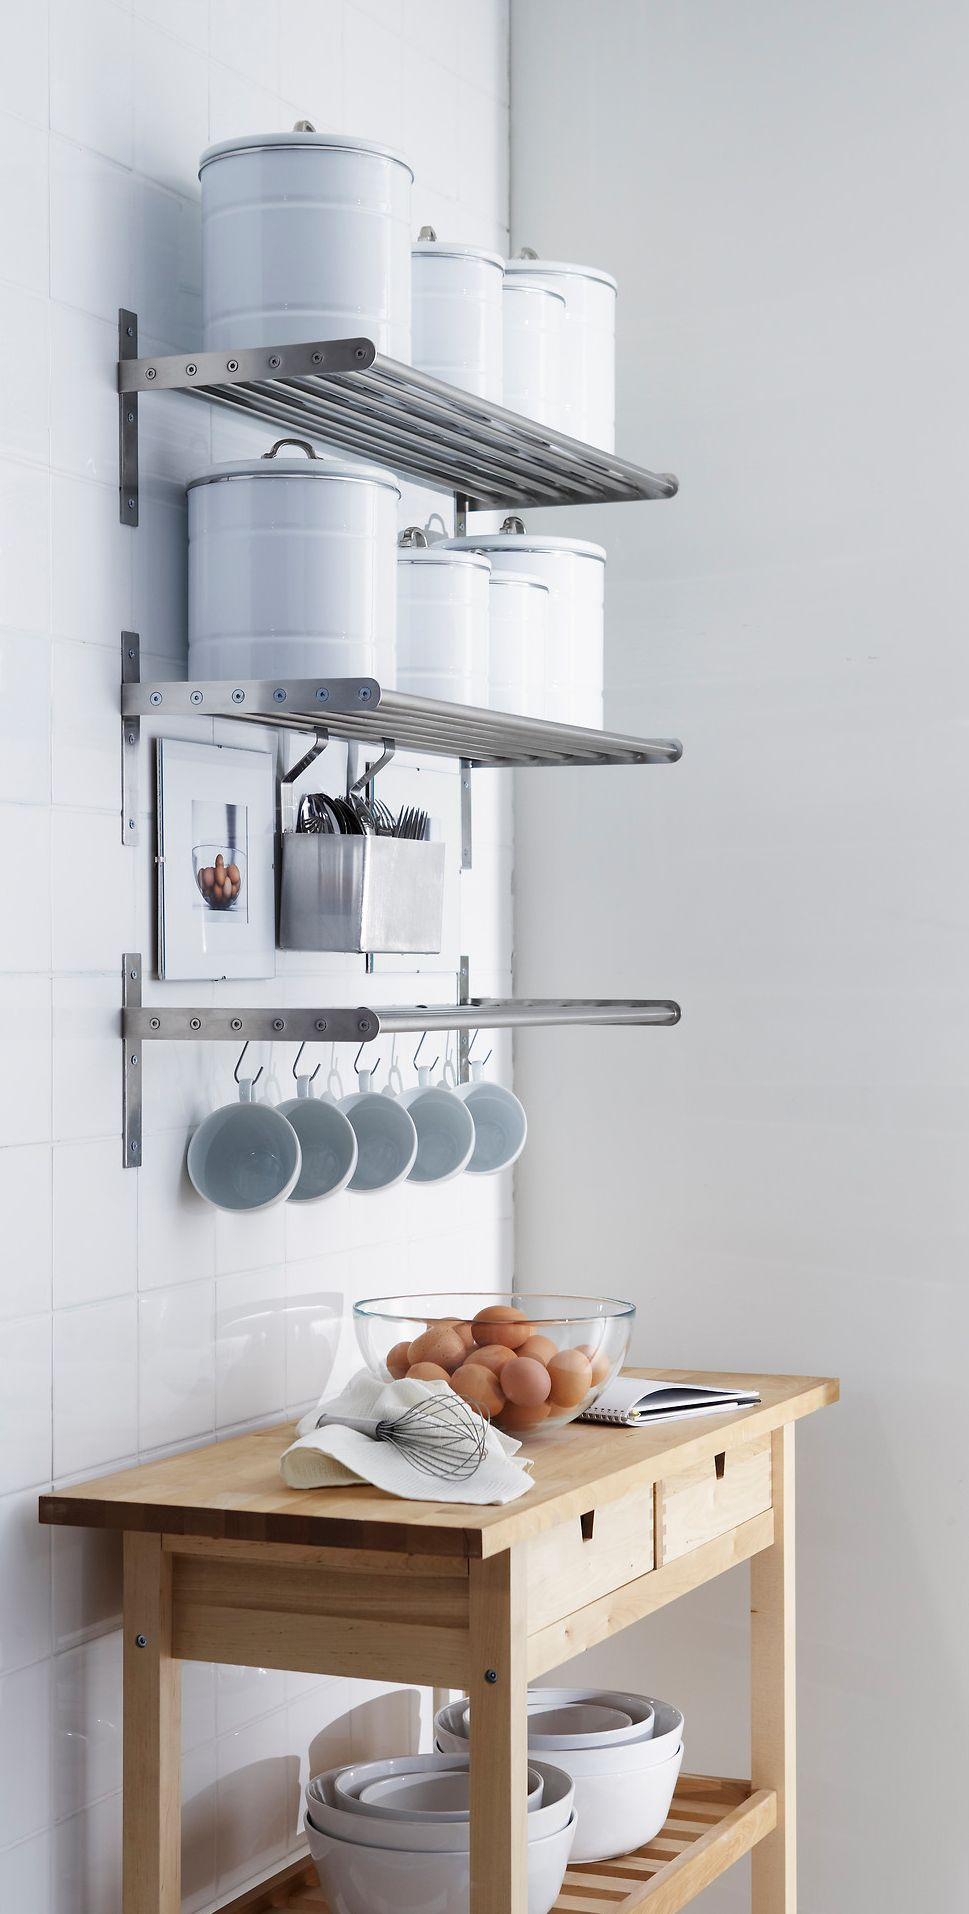 shelf designs for home. Wall storage  65 Ingenious Kitchen Organization Tips And Storage Ideas